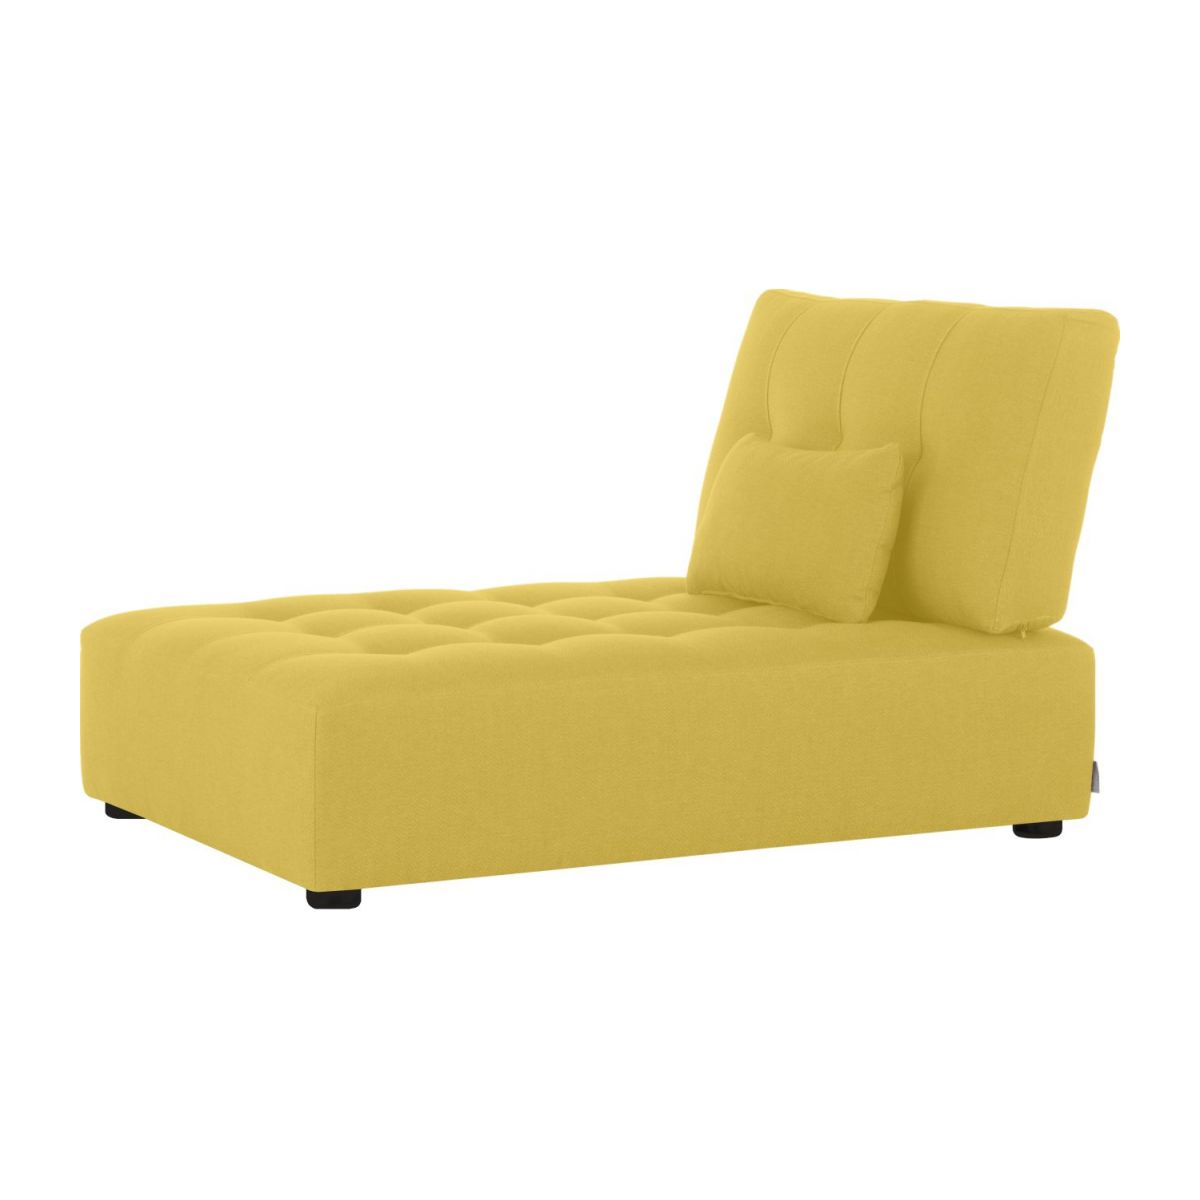 Chaiselongue aus Stoff - Senfgelb n°1